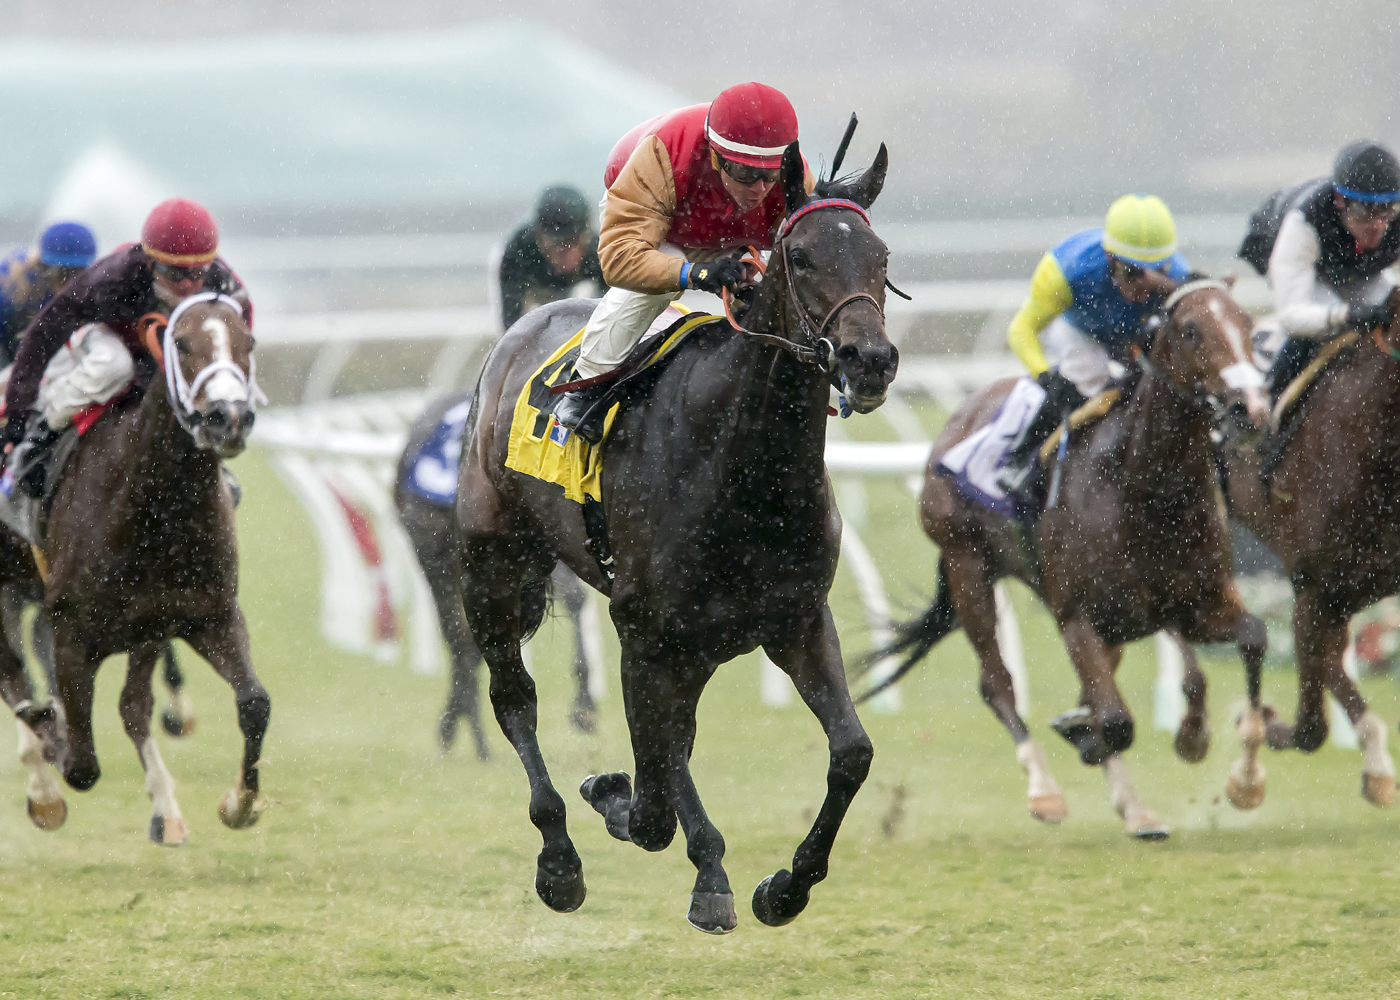 In a photo provided by Benoit Photo, Journey Home and jockey Drayden Van Dyke win the Grade III $100,000 Jimmy Durante Stakes horse race Saturday, Nov. 26, 2016, at Del Mar Thoroughbred Club in Del Mar, Calif. (Benoit Photo via AP)